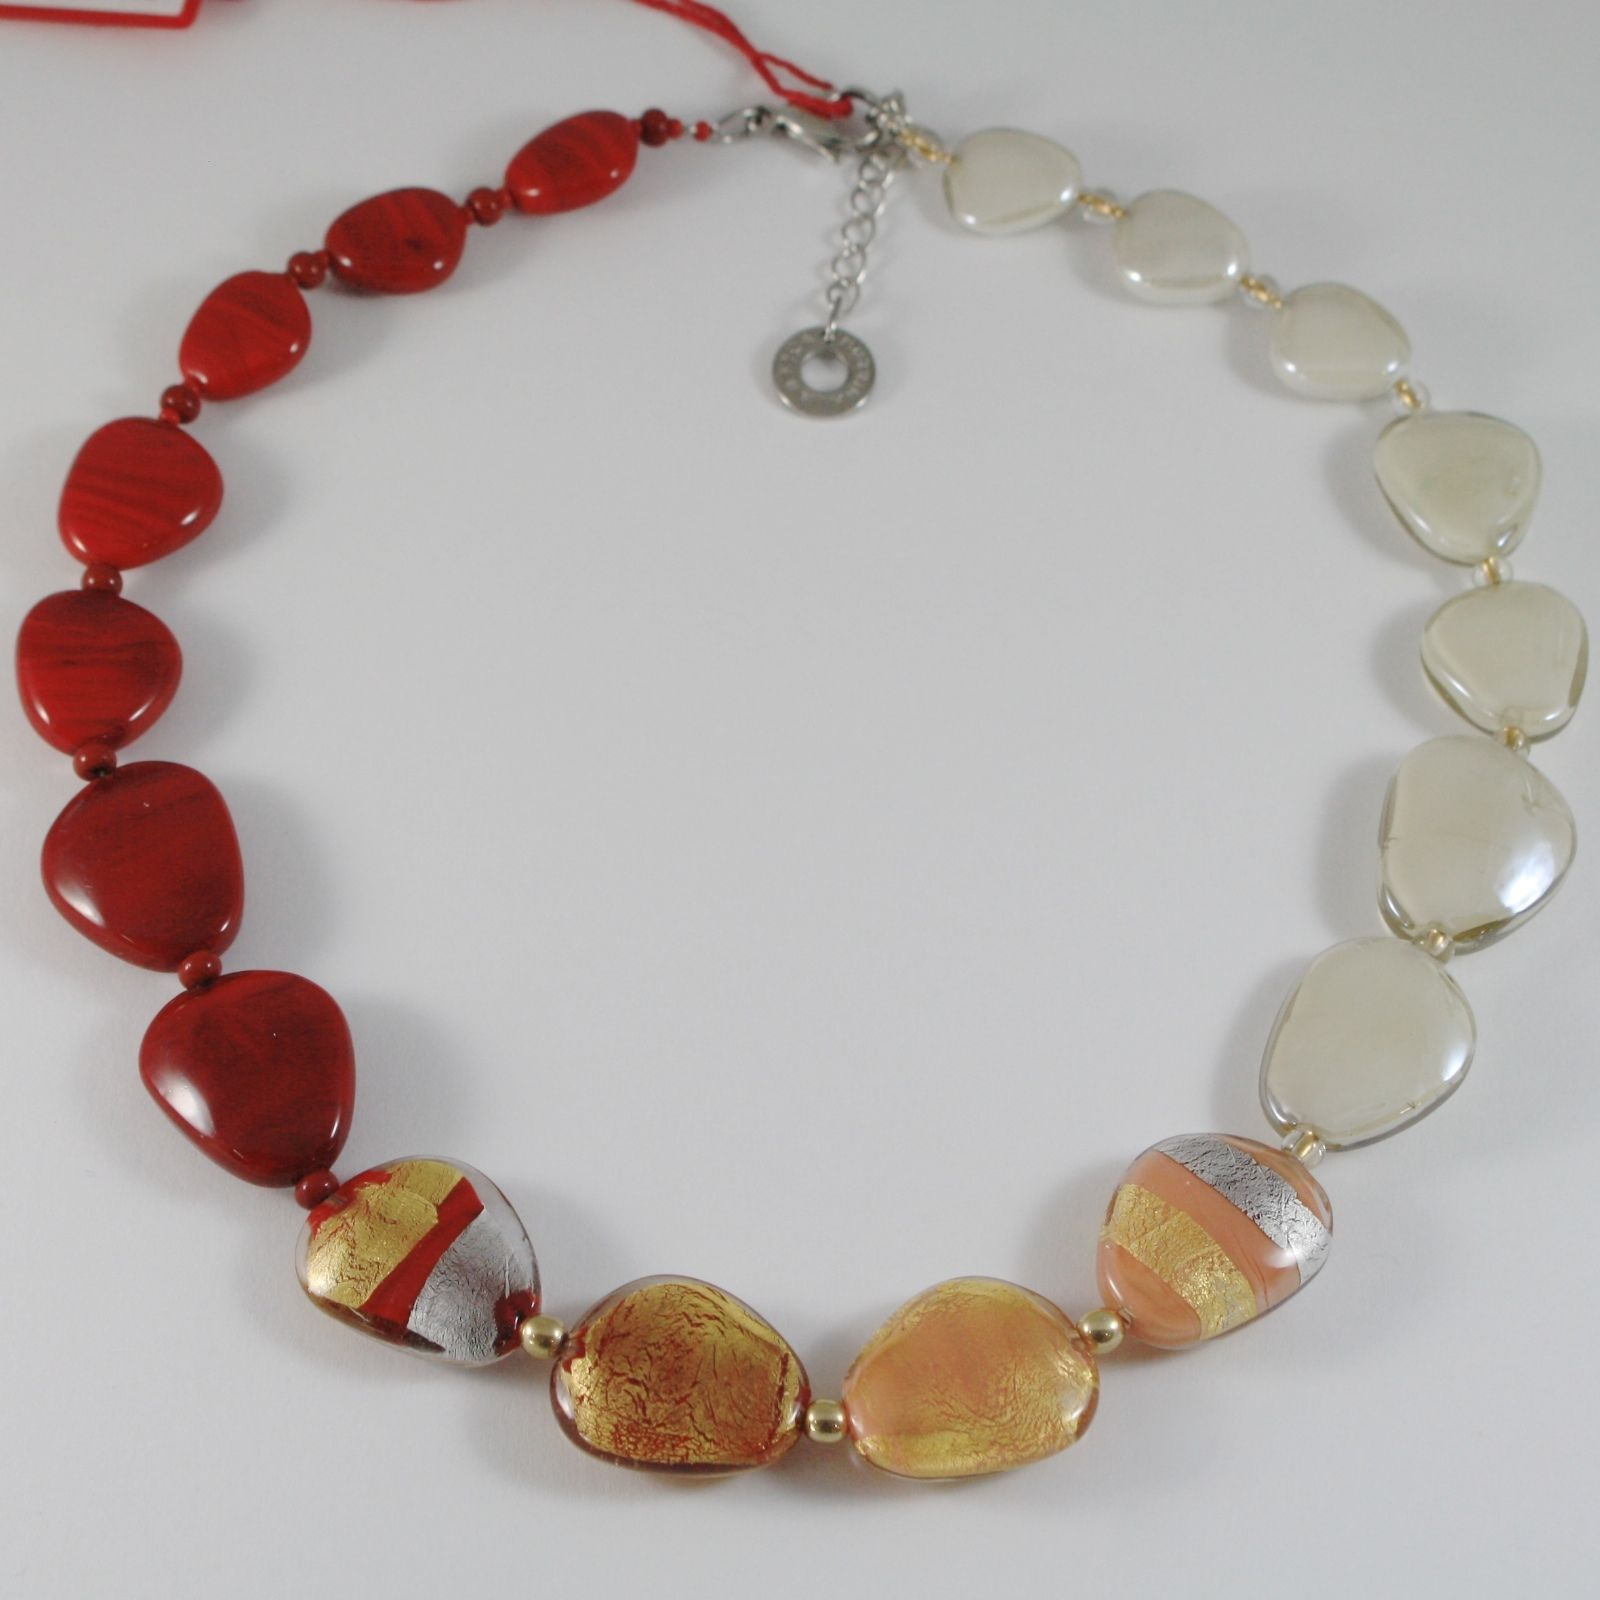 ANTICA MURRINA VENEZIA STRIPED NECKLACE, RED, WHITE, BROWN AND GOLD FLAT DROPS